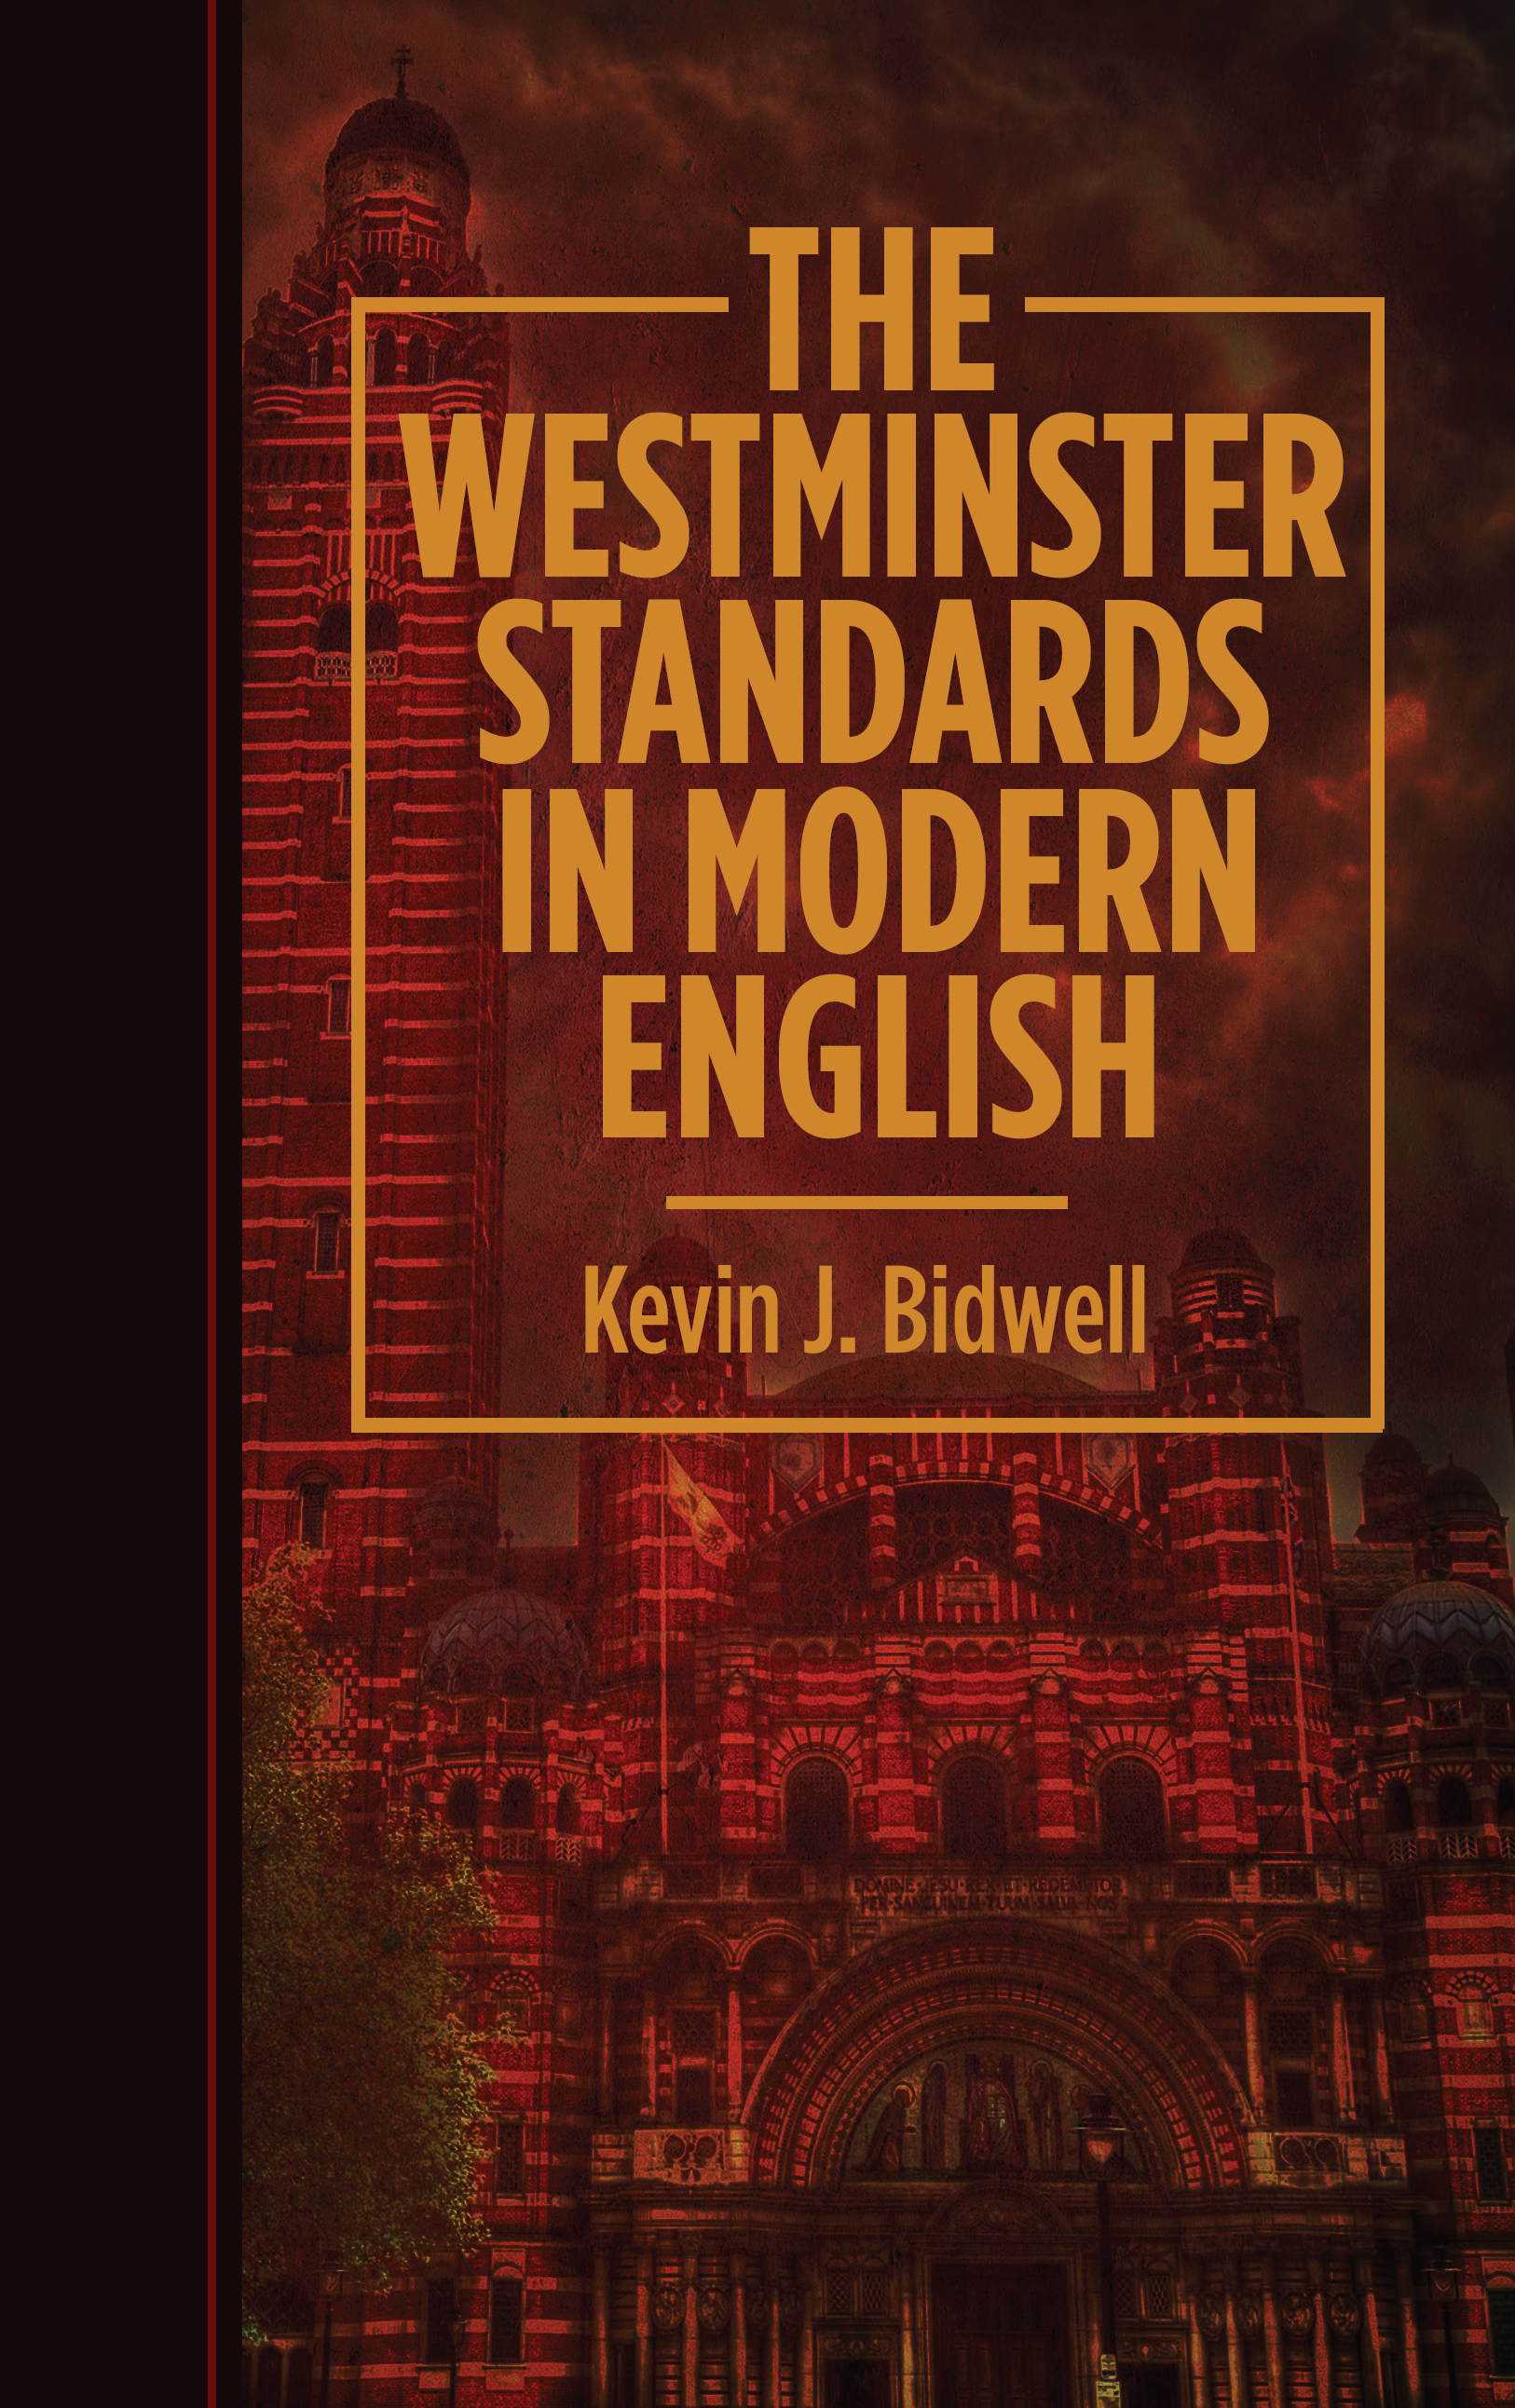 Ep Books The Store For Books: The Westminster Standards In Modern English Edited By